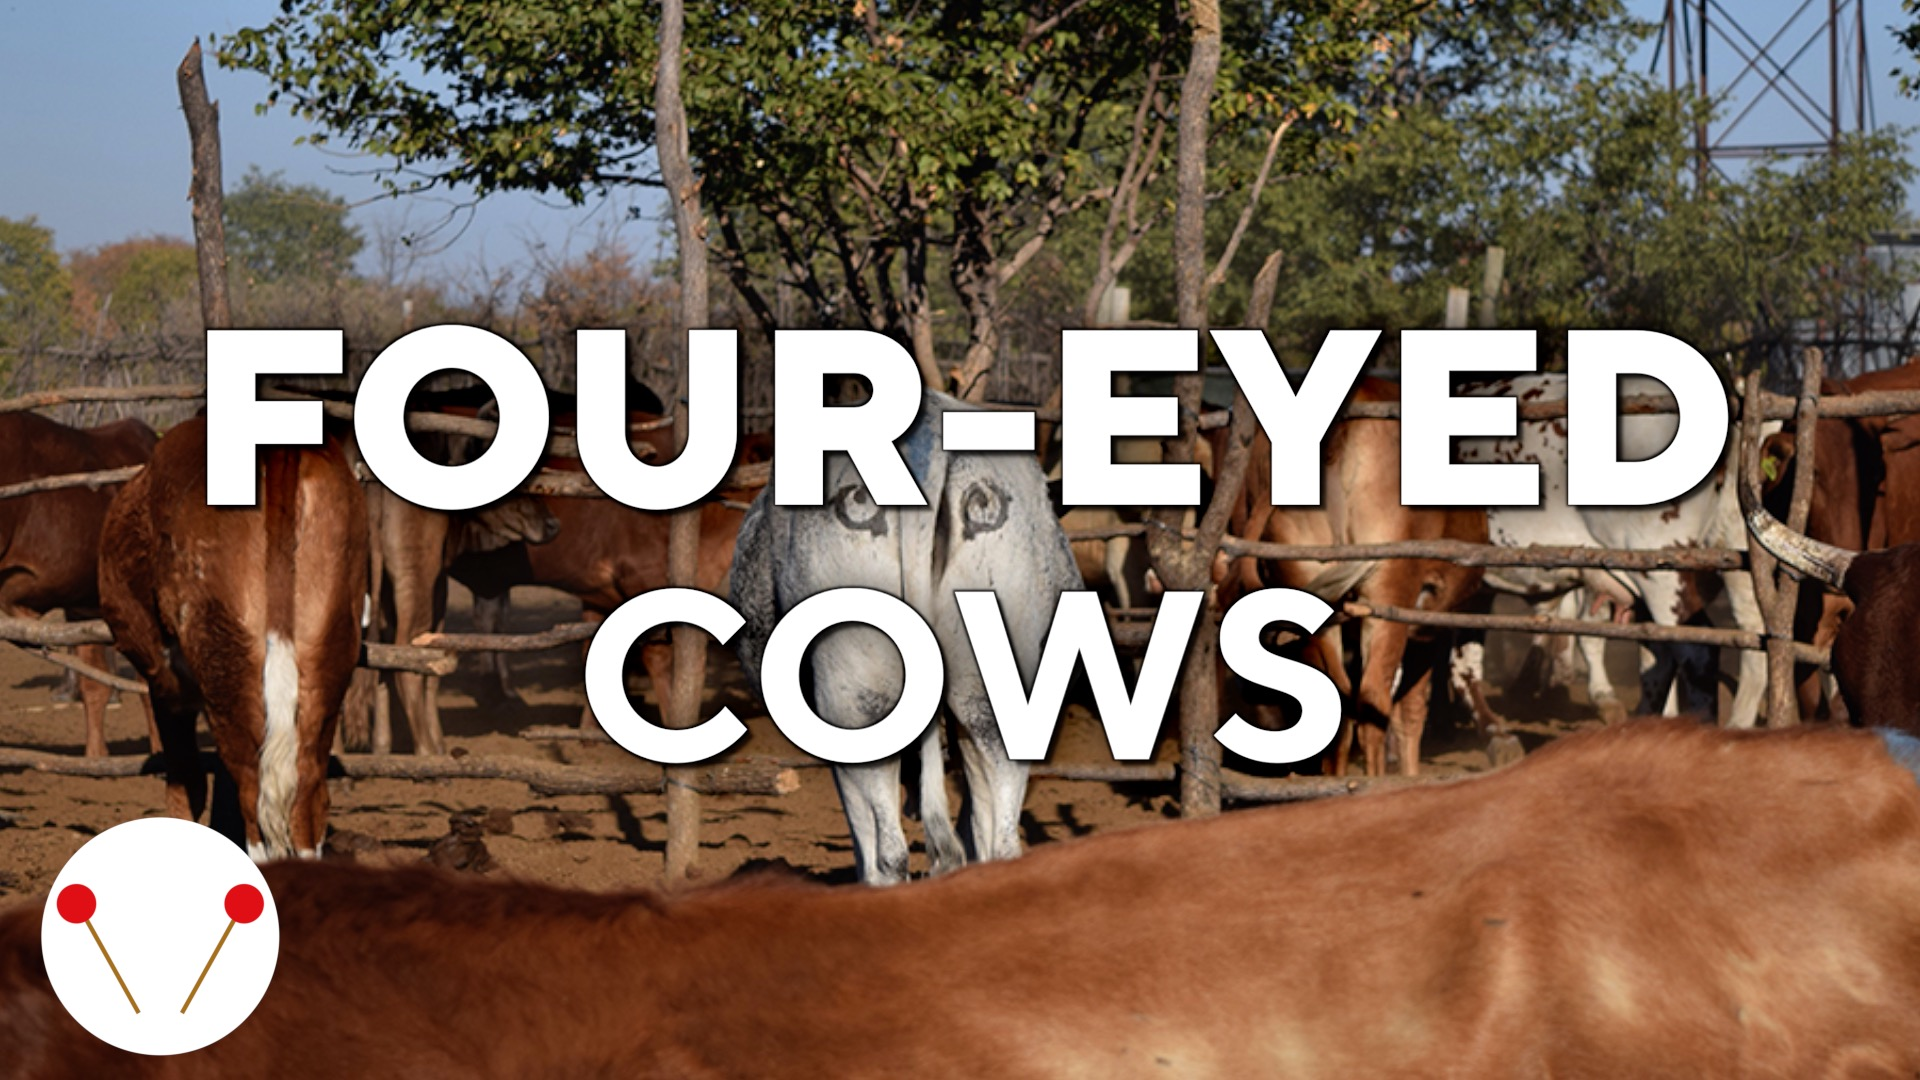 'Four-eyed' cows keep lions away